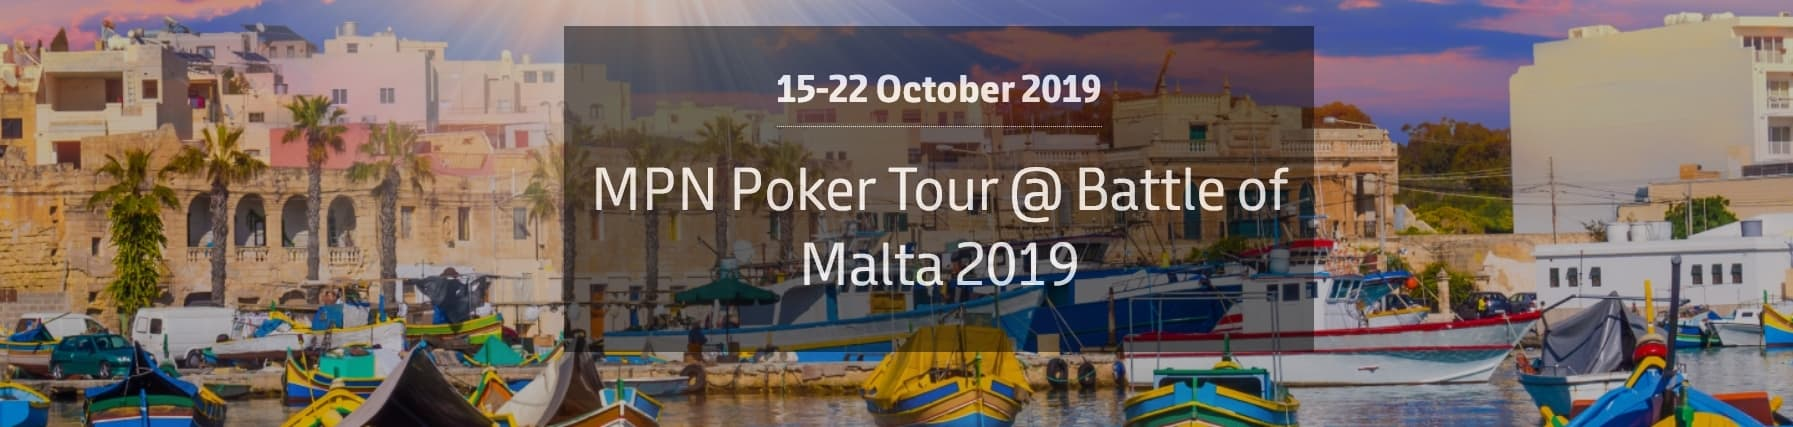 Blowout and the Battle of Malta from Red Star Poker